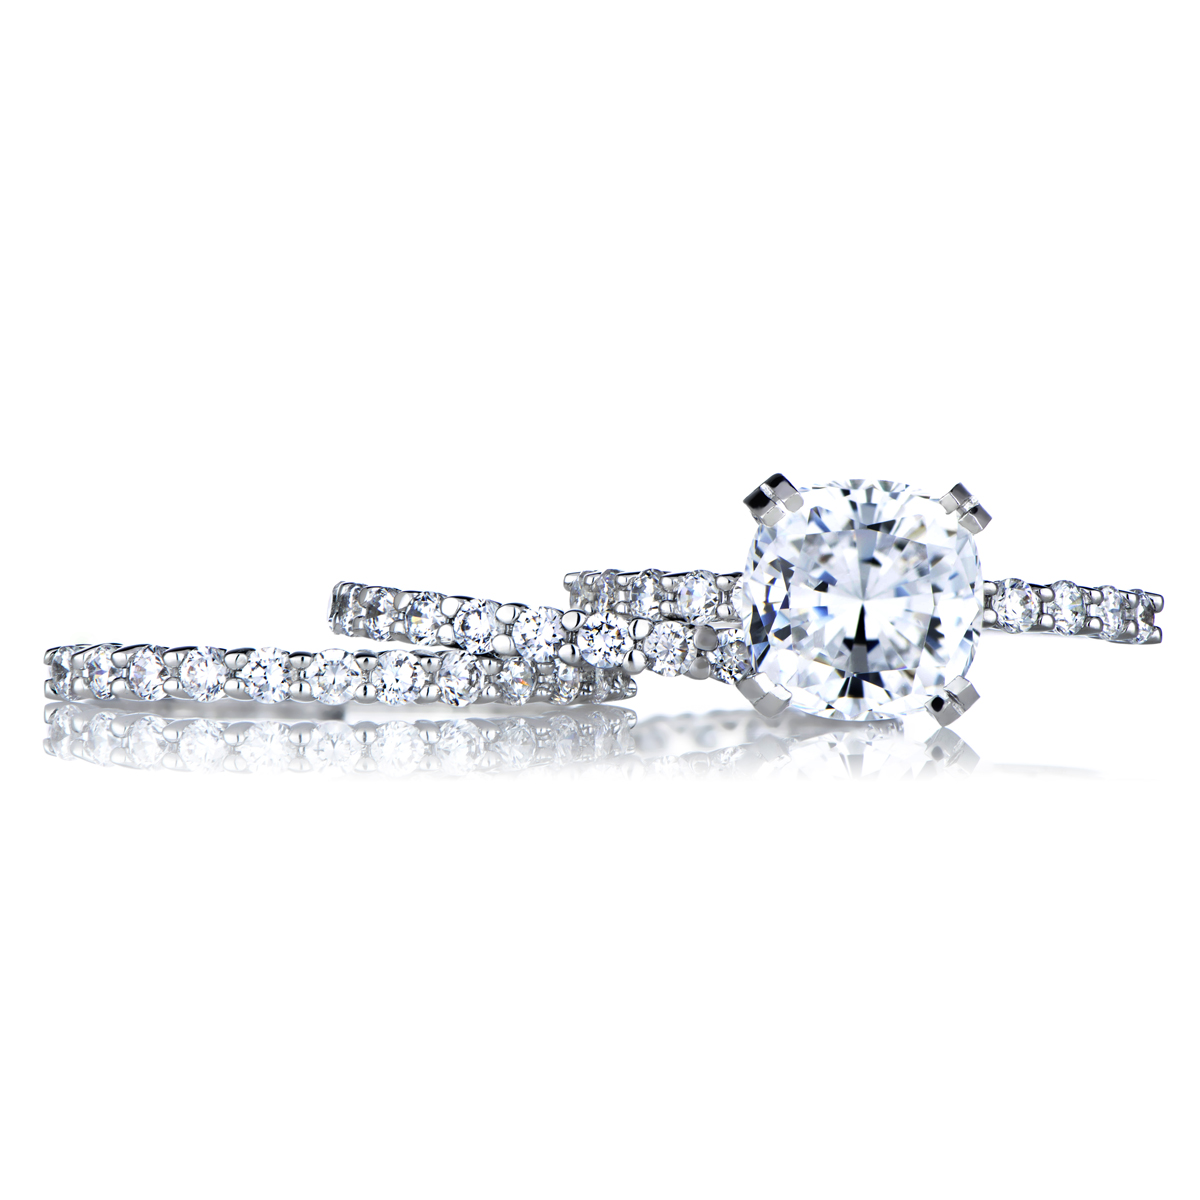 Size 10 Rings | Size 10 Engagement Rings | Emitations